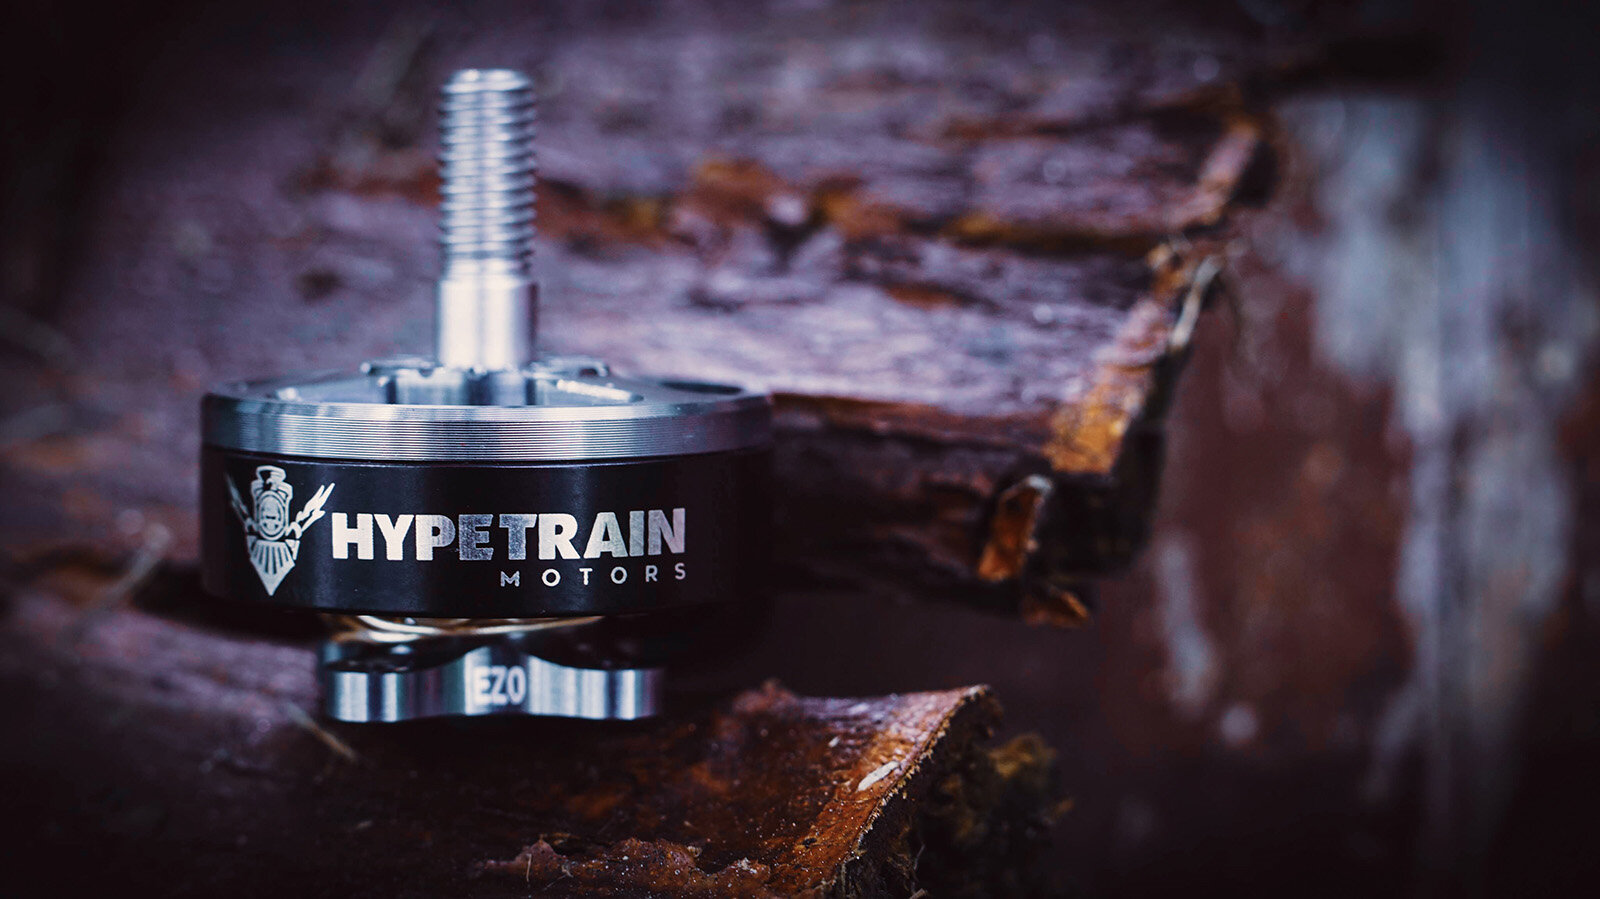 Hypetrain-Freestyle-2306-2450KV-images-creative-photo-1.jpg